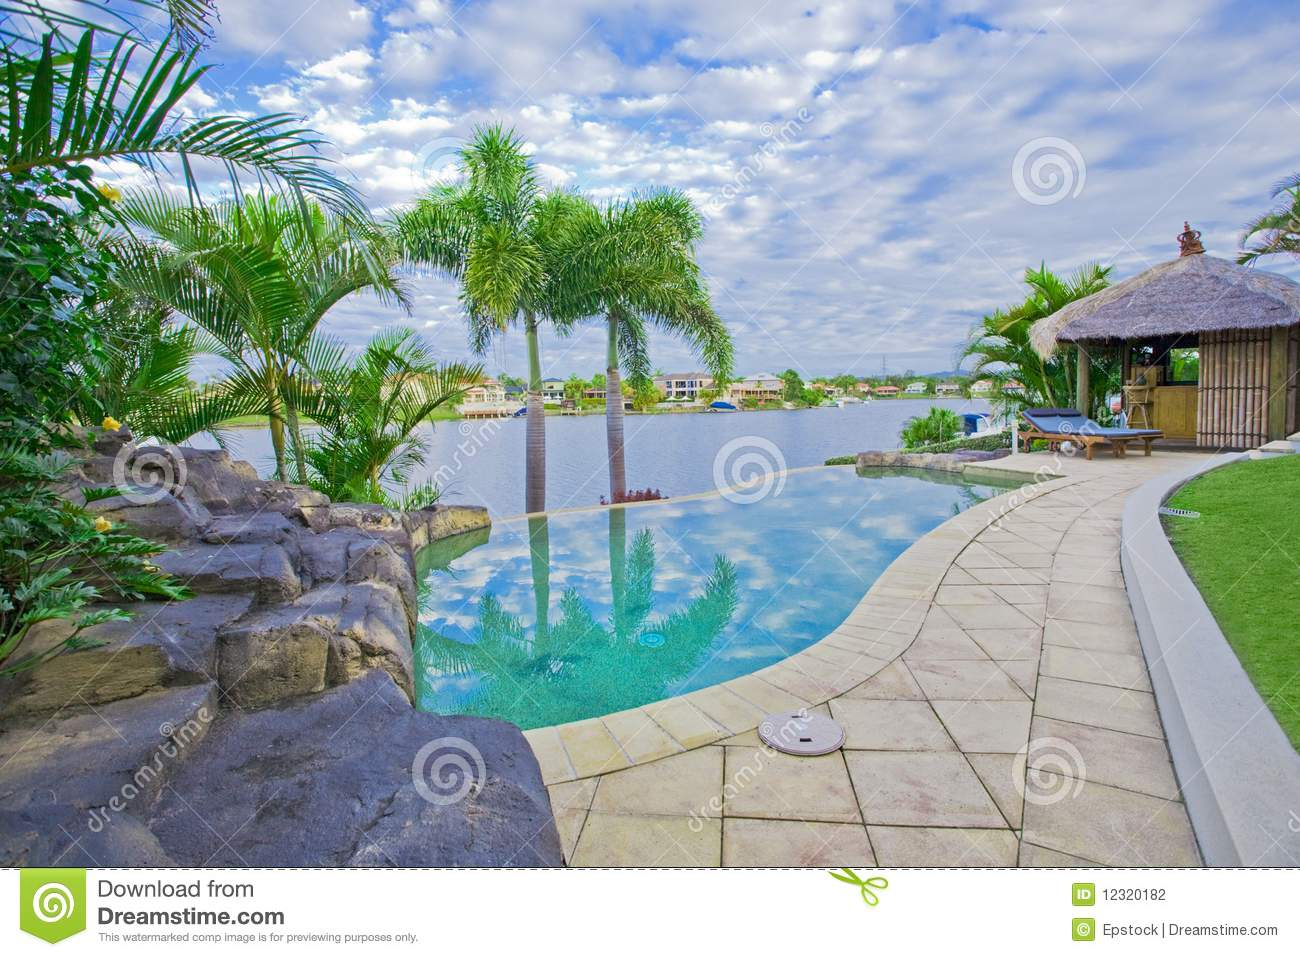 Beach house plans beach home plans beach house plan - Luxury Mansion Outside Deck With Bali Hut Stock